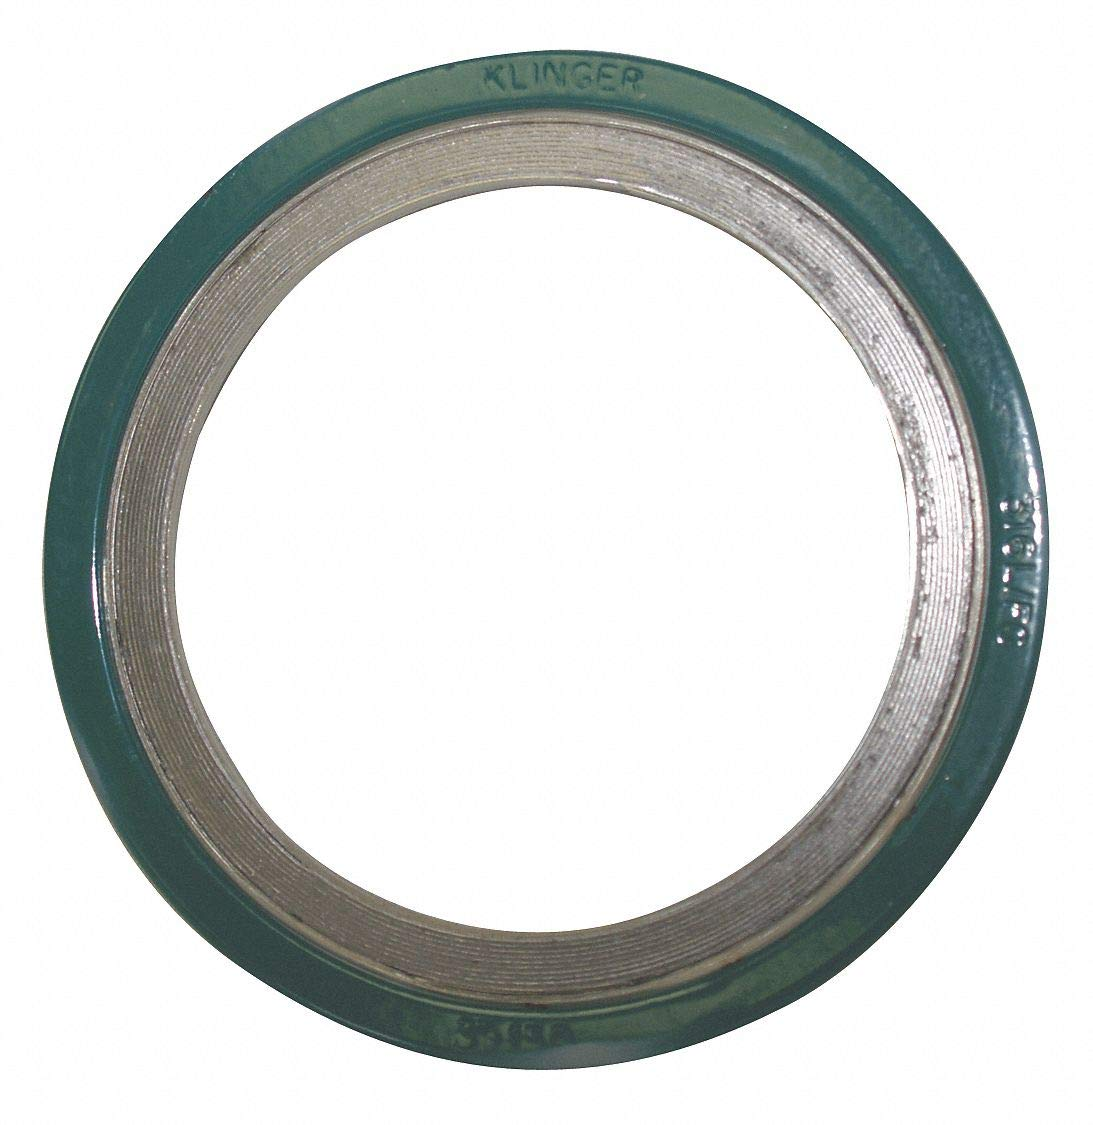 Klinger Spiral Wound Gasket Type CR 304SS and Flexible